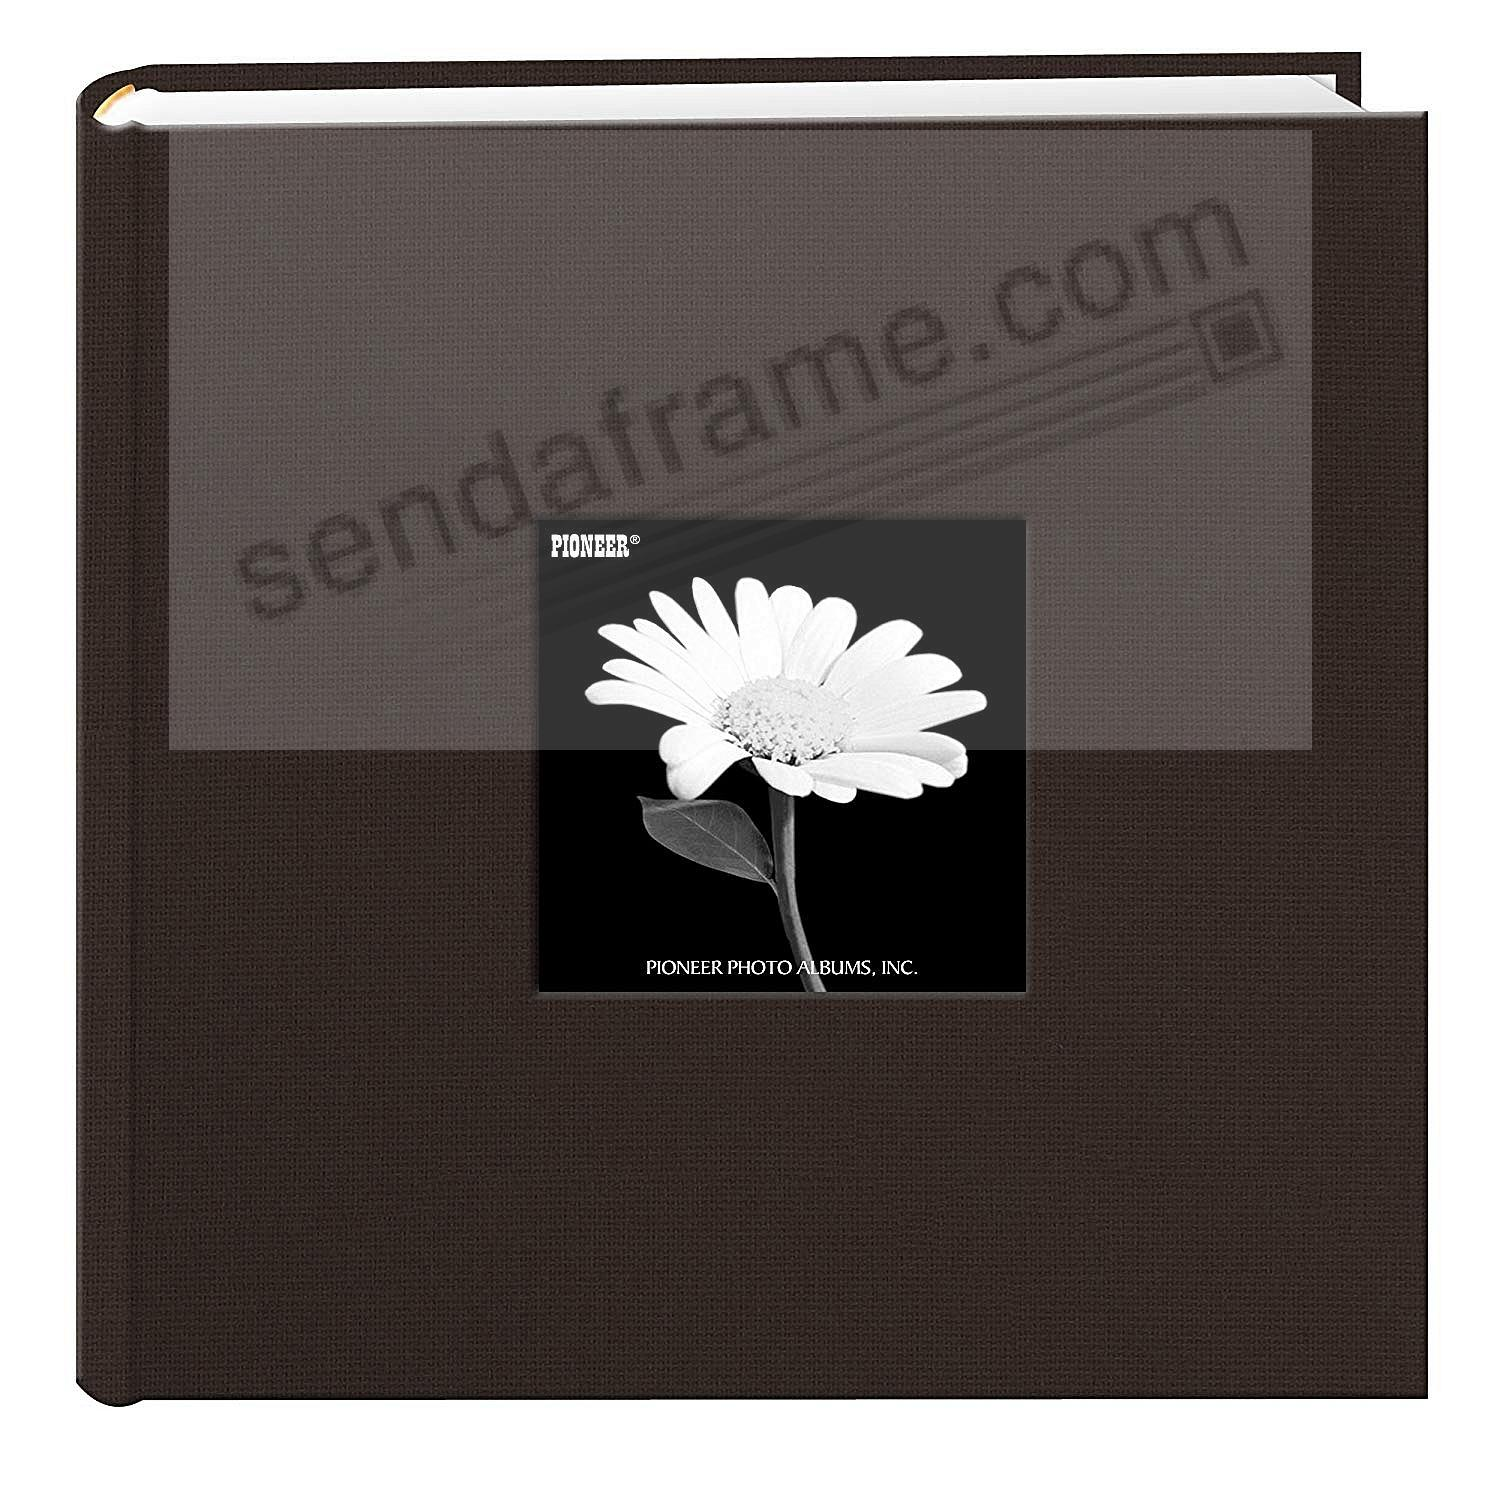 CHOCOLATE-BROWN Cloth 2-up frame cover photo album by Pioneer®